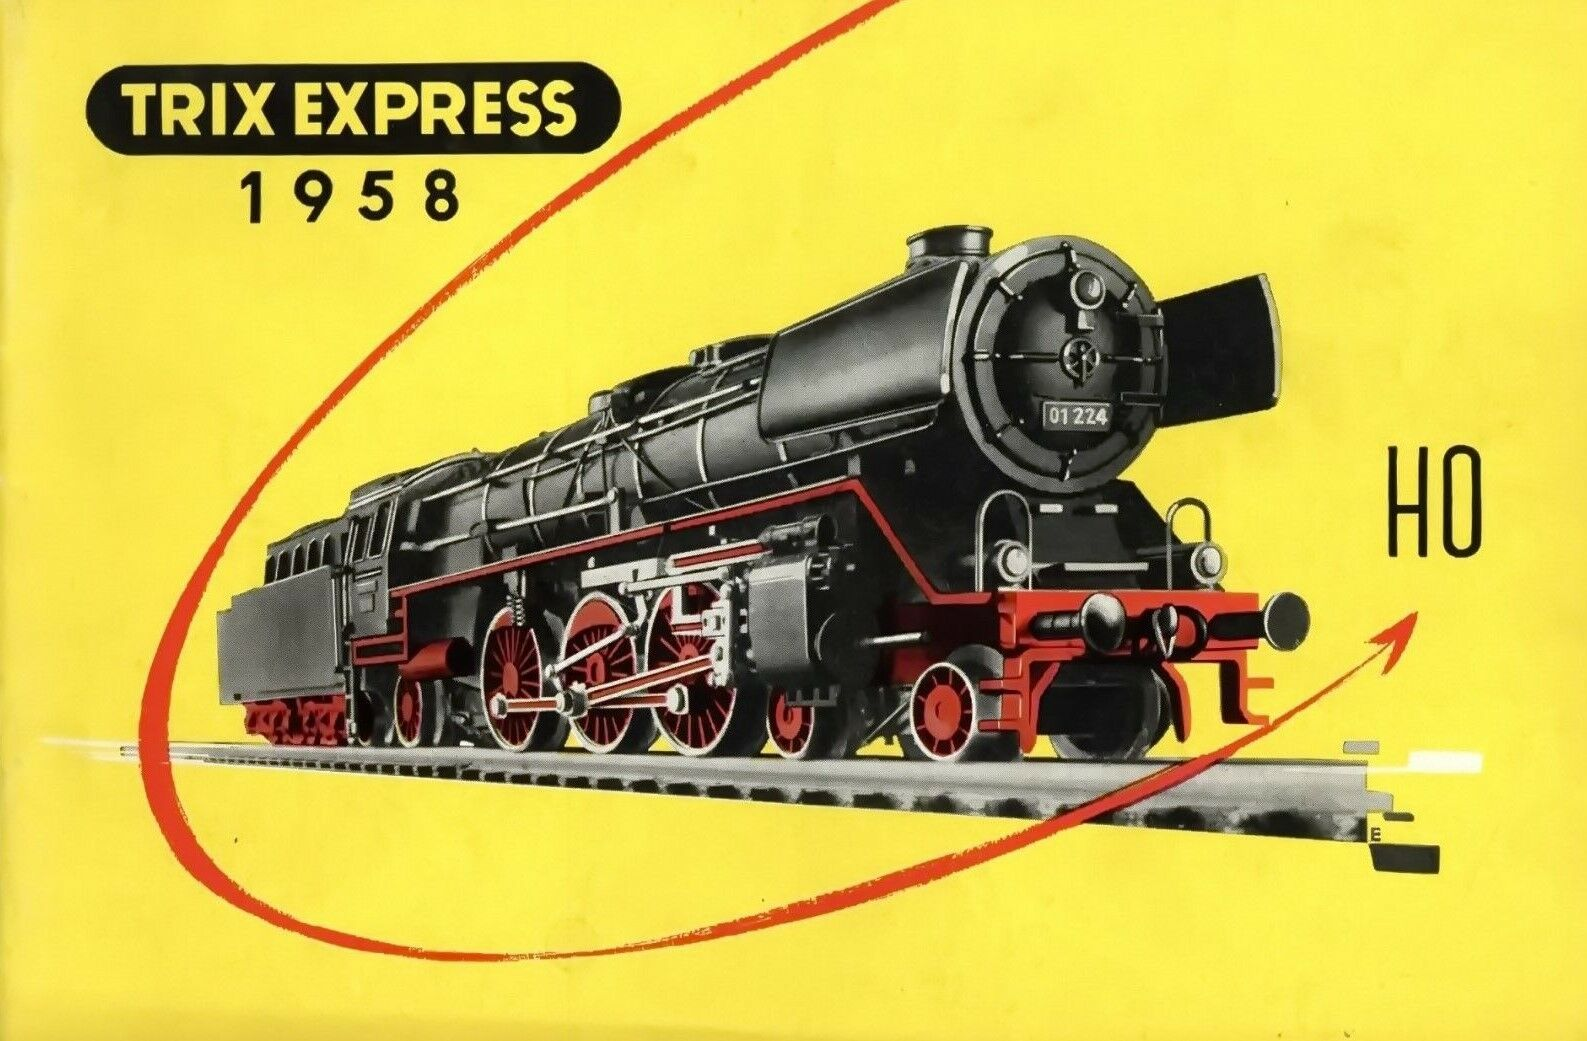 Trix Express H0 1958 Model Railway Catalogue Catalog Model Railroad